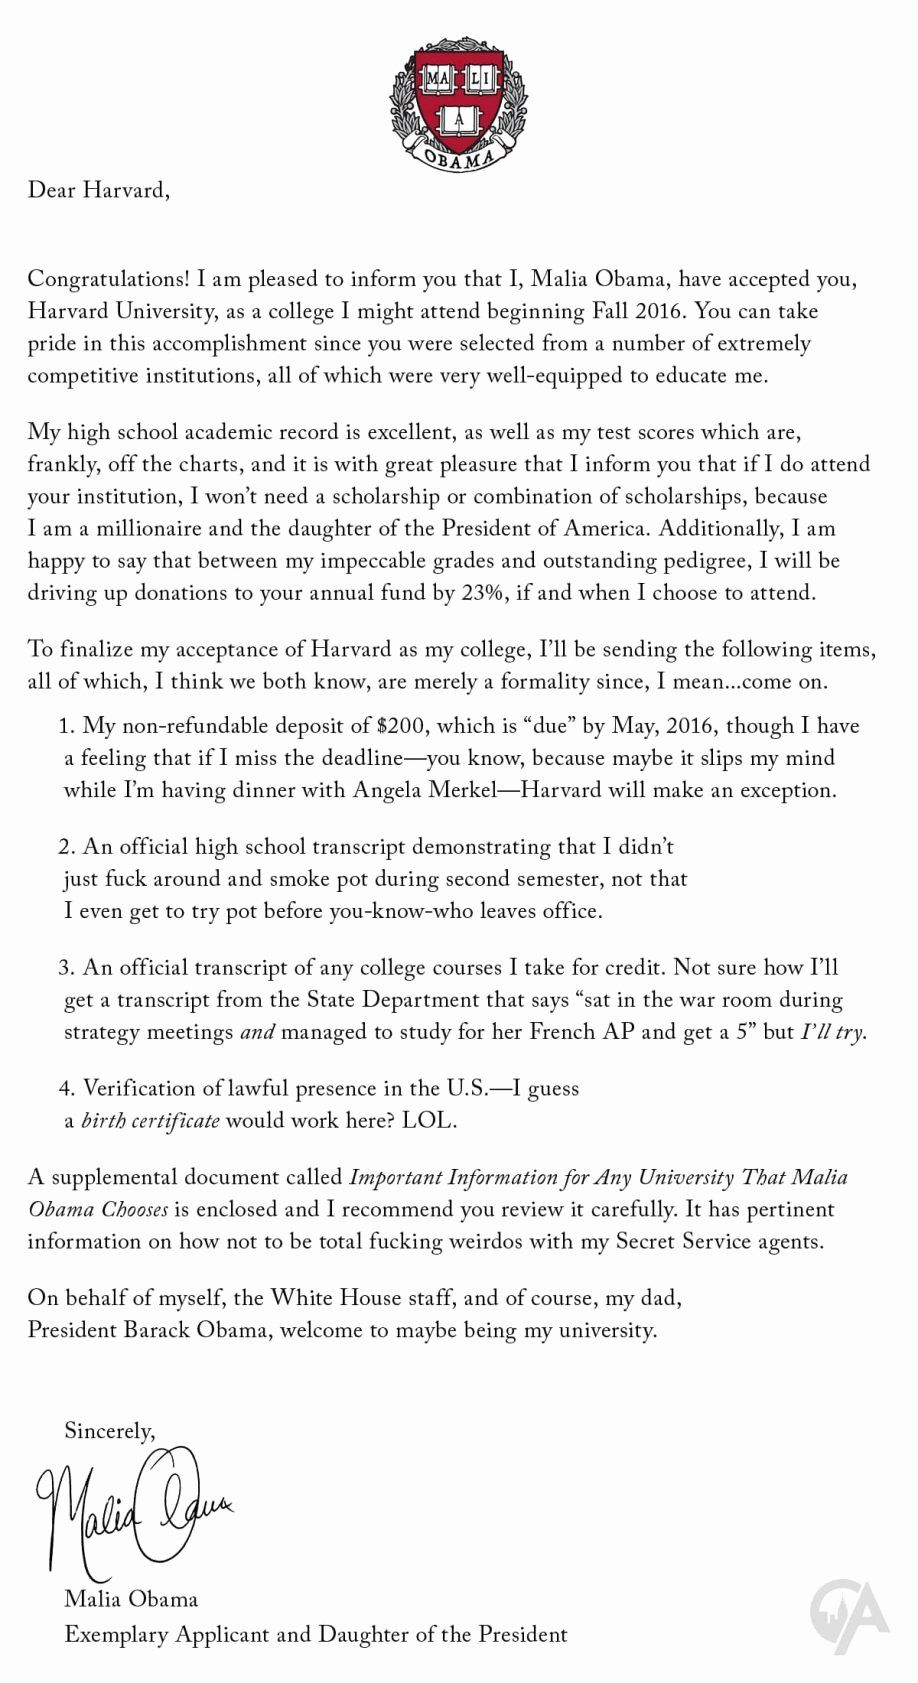 Fake College Acceptance Letter Generator Best Of Template Word Wi Law School Application Act 48 Course Dissertation